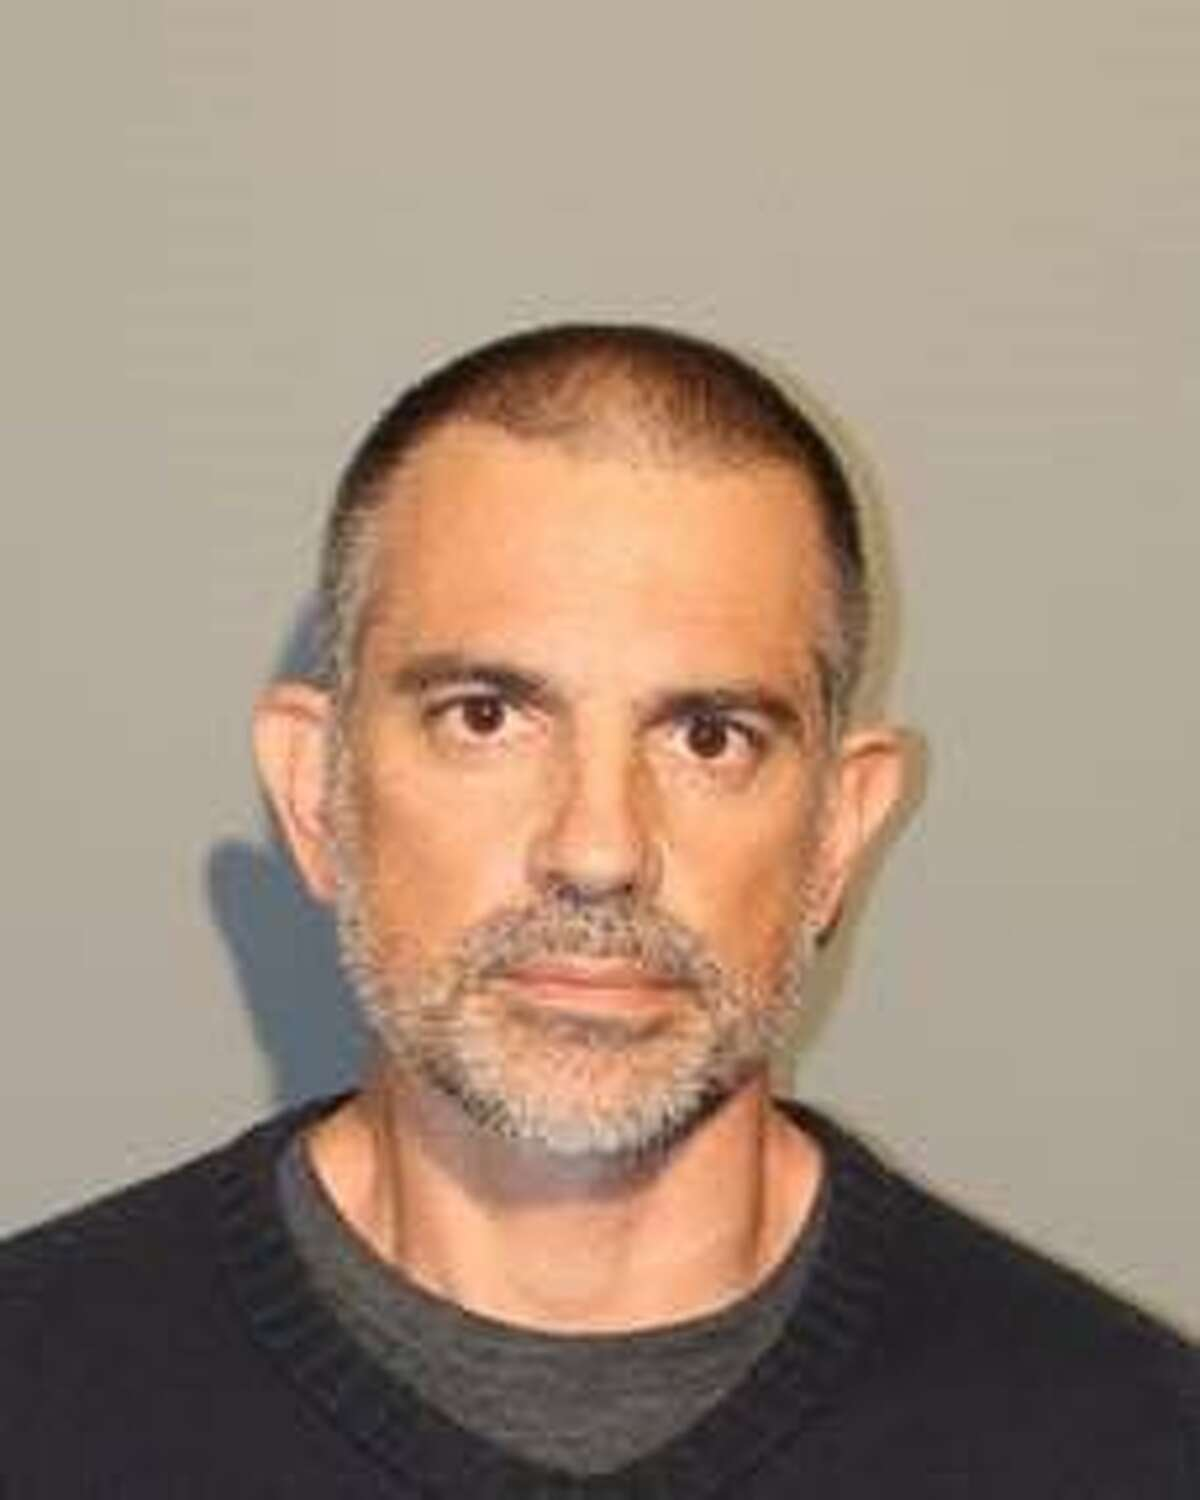 Fotis Dulos, 51, was arrested in connection with the disappearance of his estranged wife, Jennifer Dulos, a New Canaan mother of five. Fotis Dulos was charged with tampering with or fabricating physical evidence and hindering prosecution in the first degree.